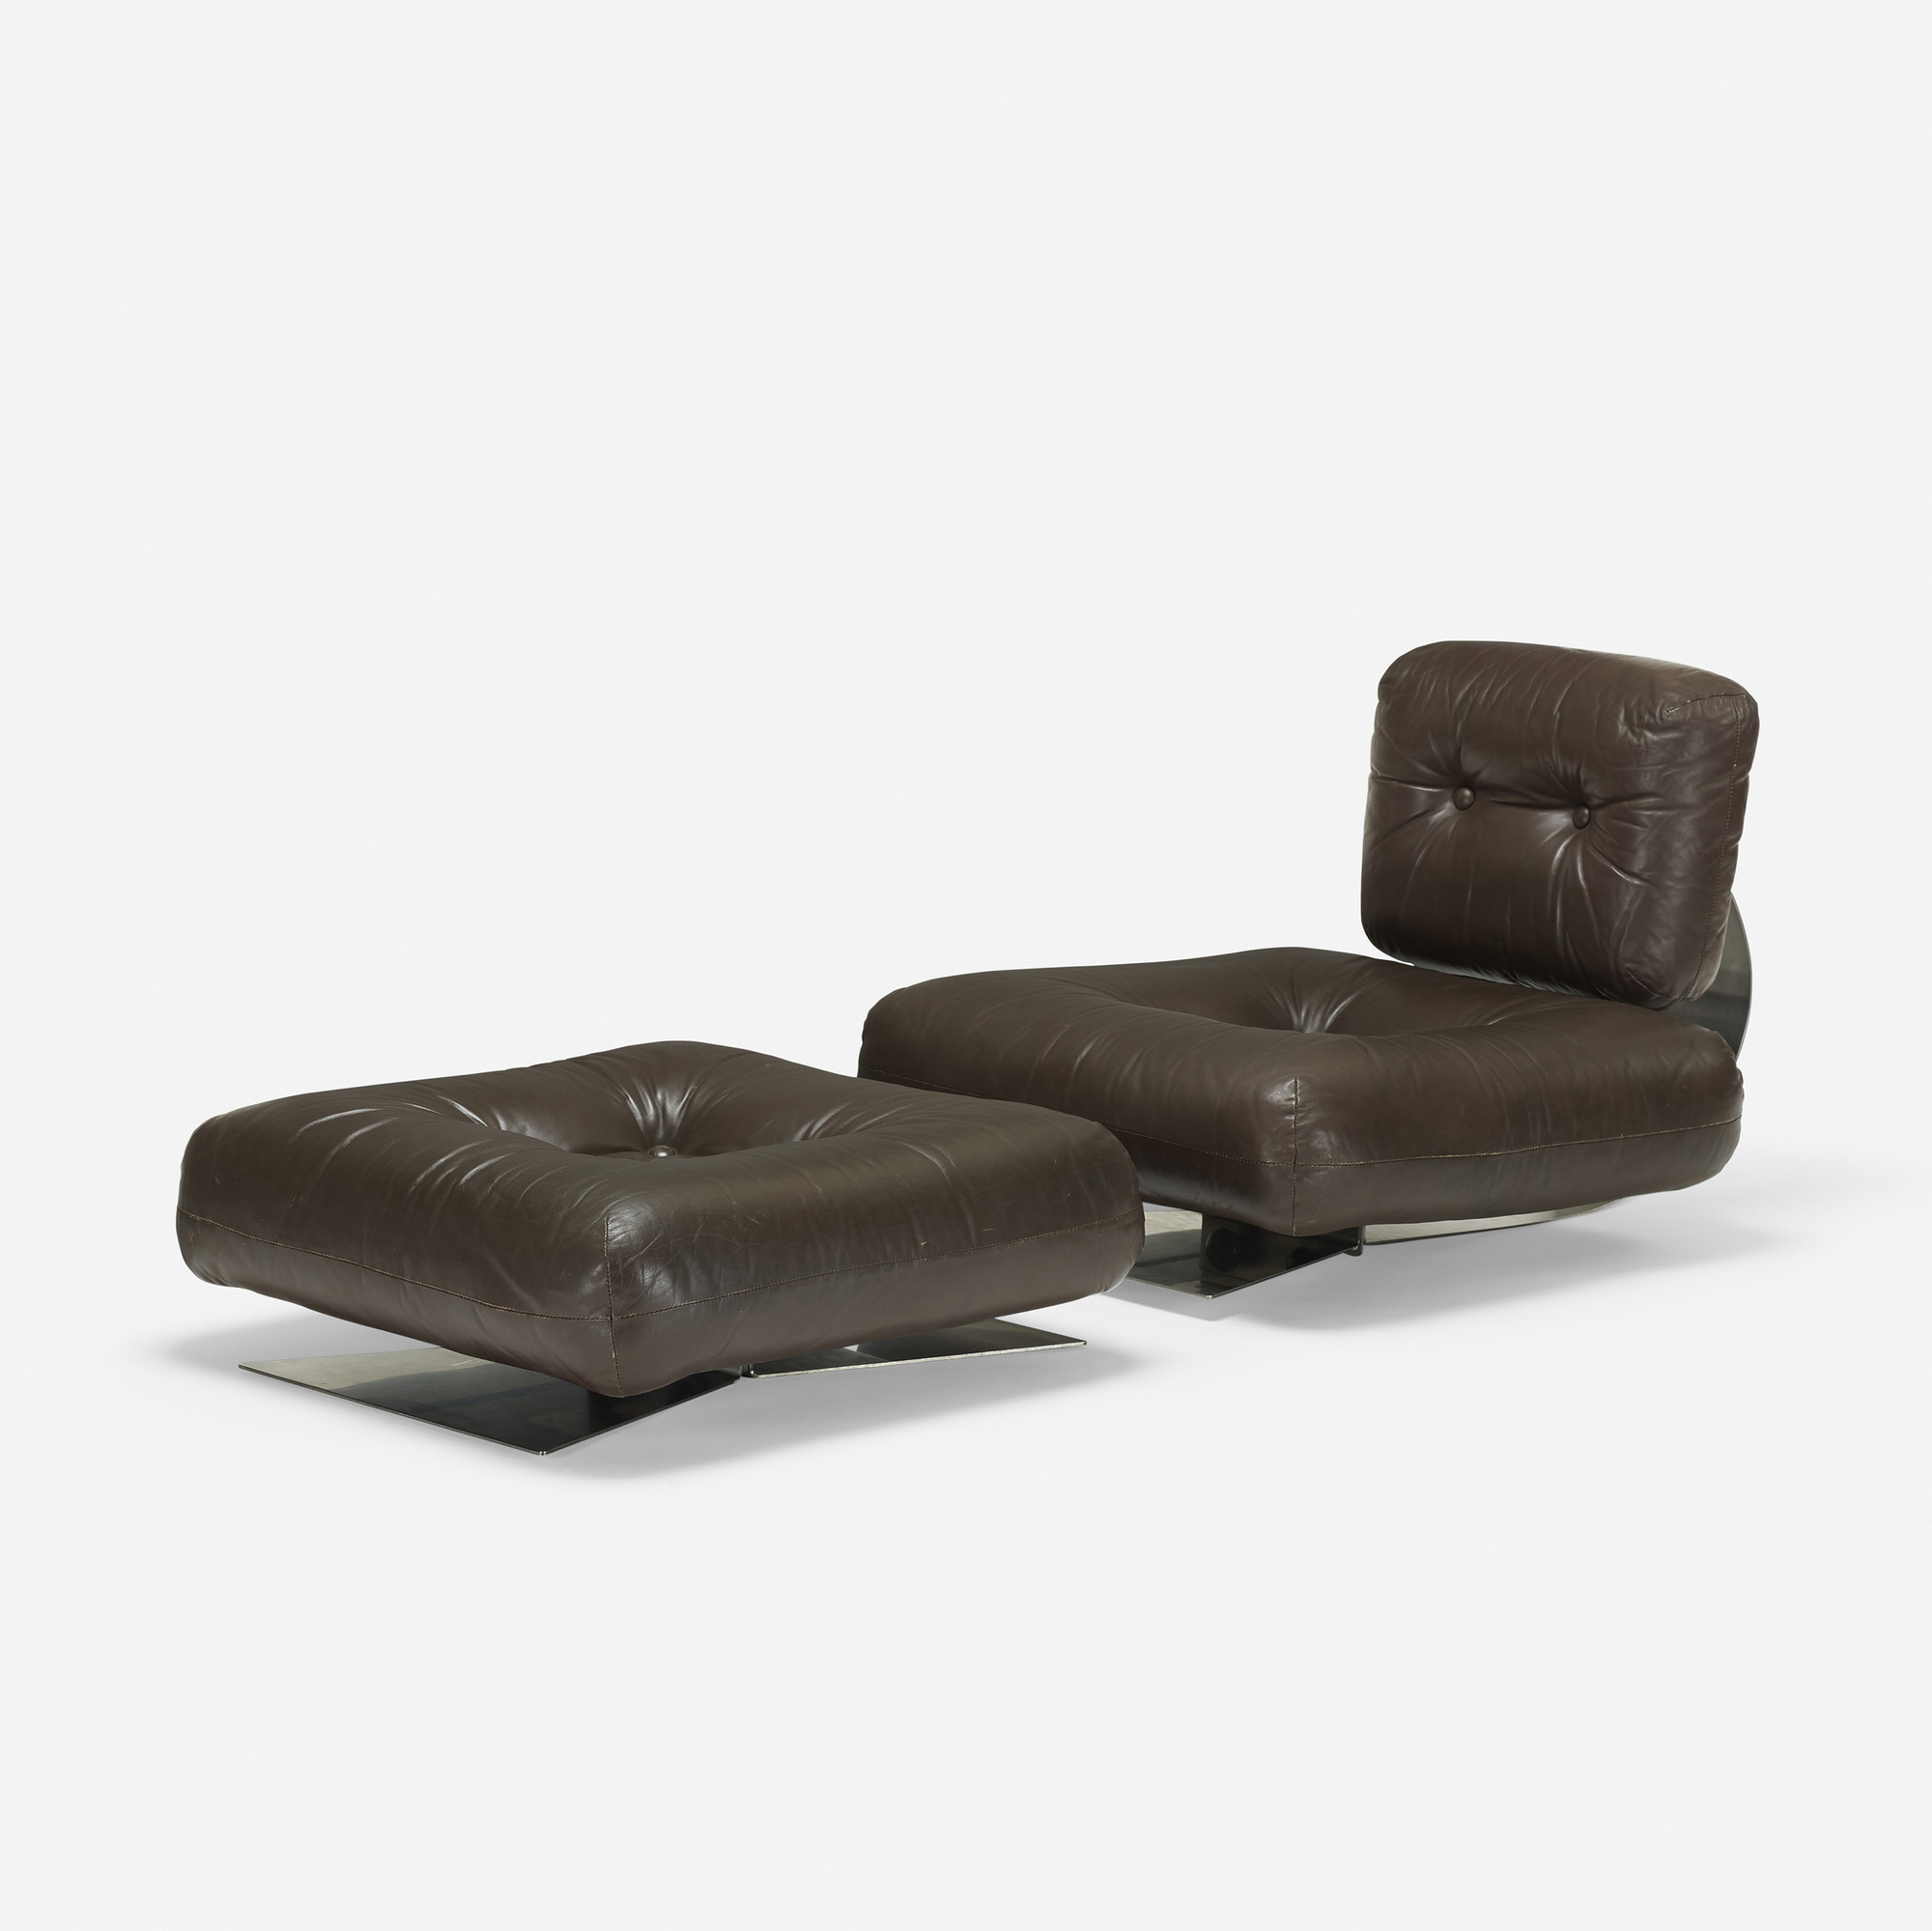 334 Oscar Niemeyer Lounge Chair And Ottoman 2 Of 3